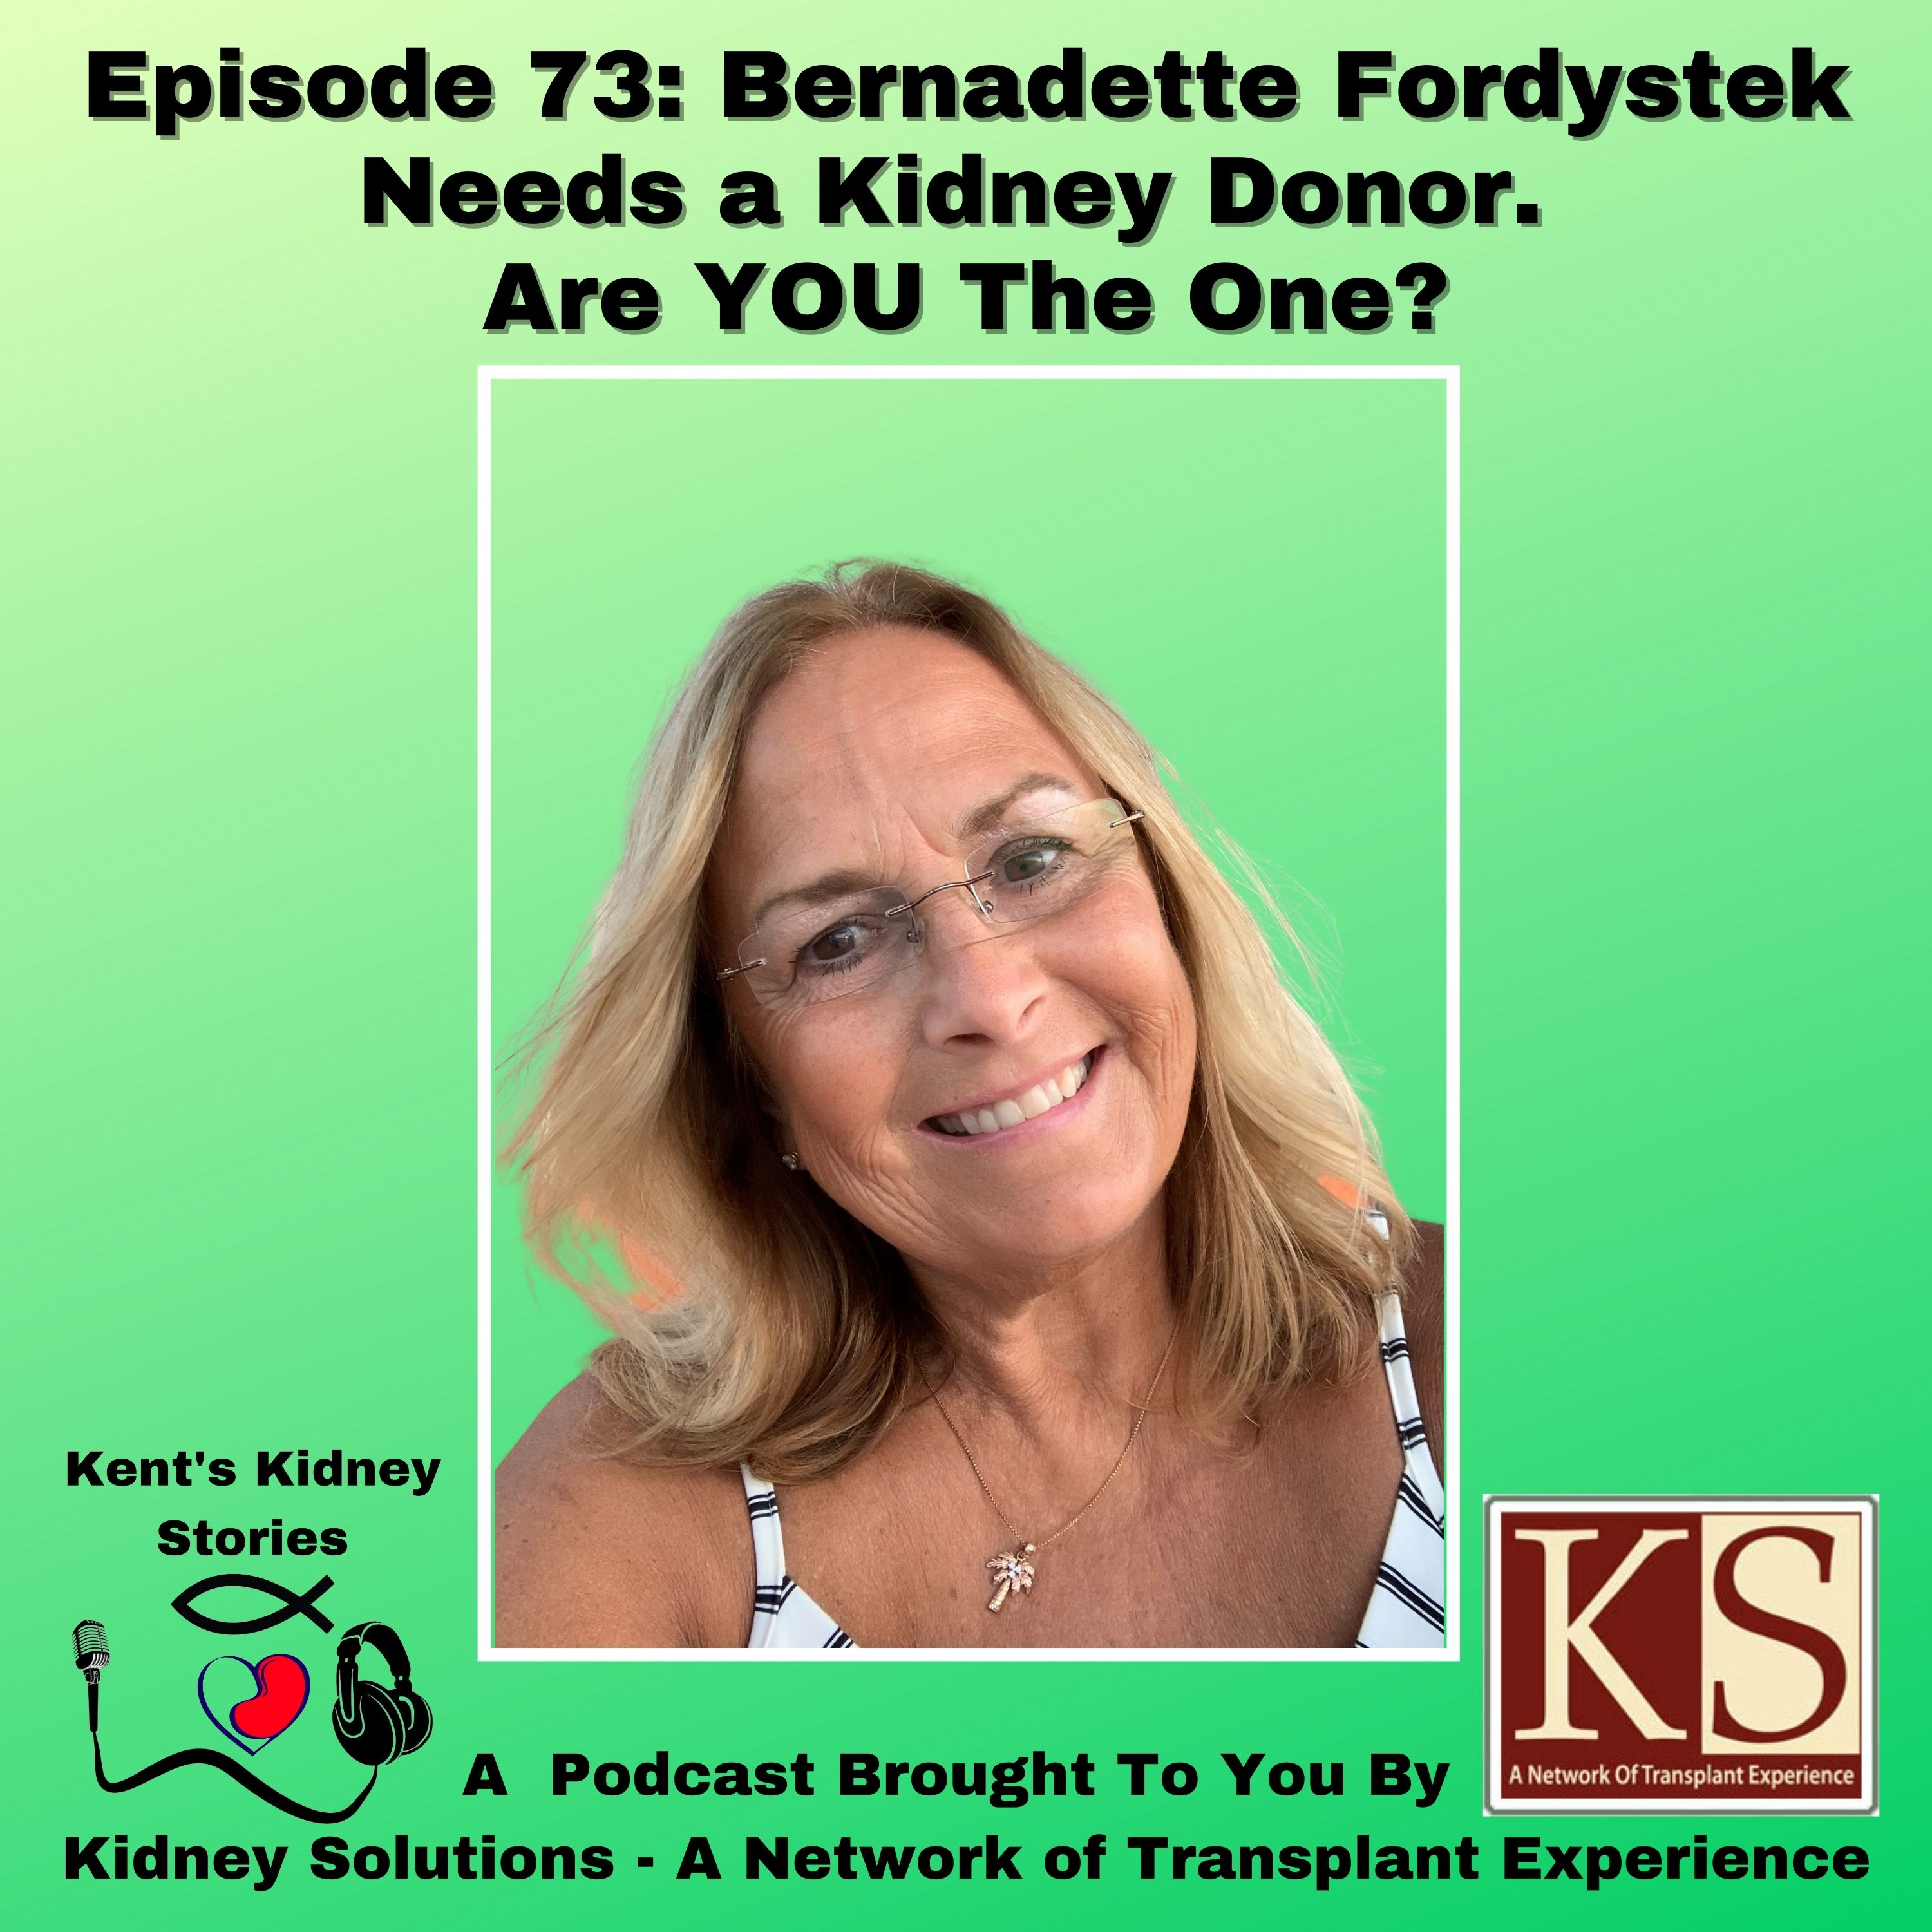 Episode 73: Bernadette Fordystek Needs a Kidney Donor. Are You The One?